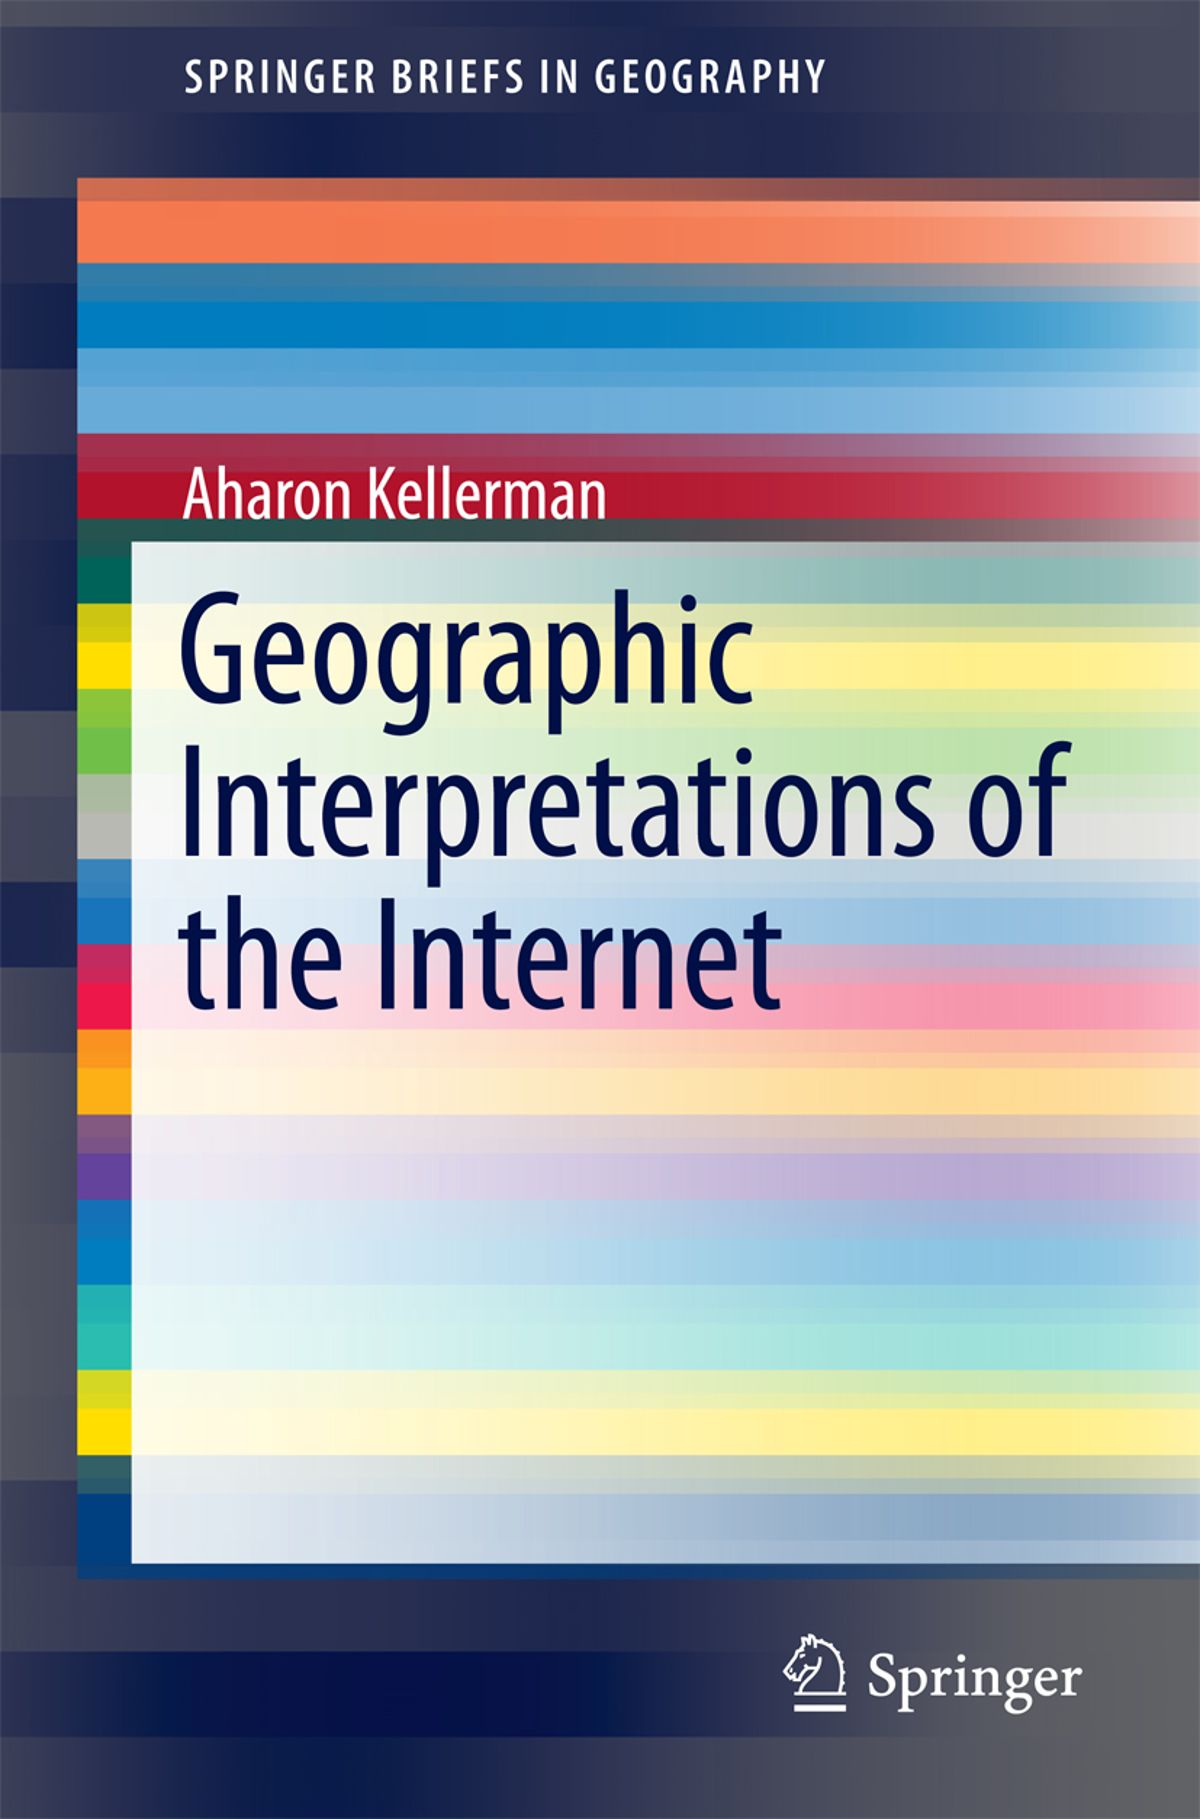 Geographic Interpretations of the Internet , Aharon Kellerman